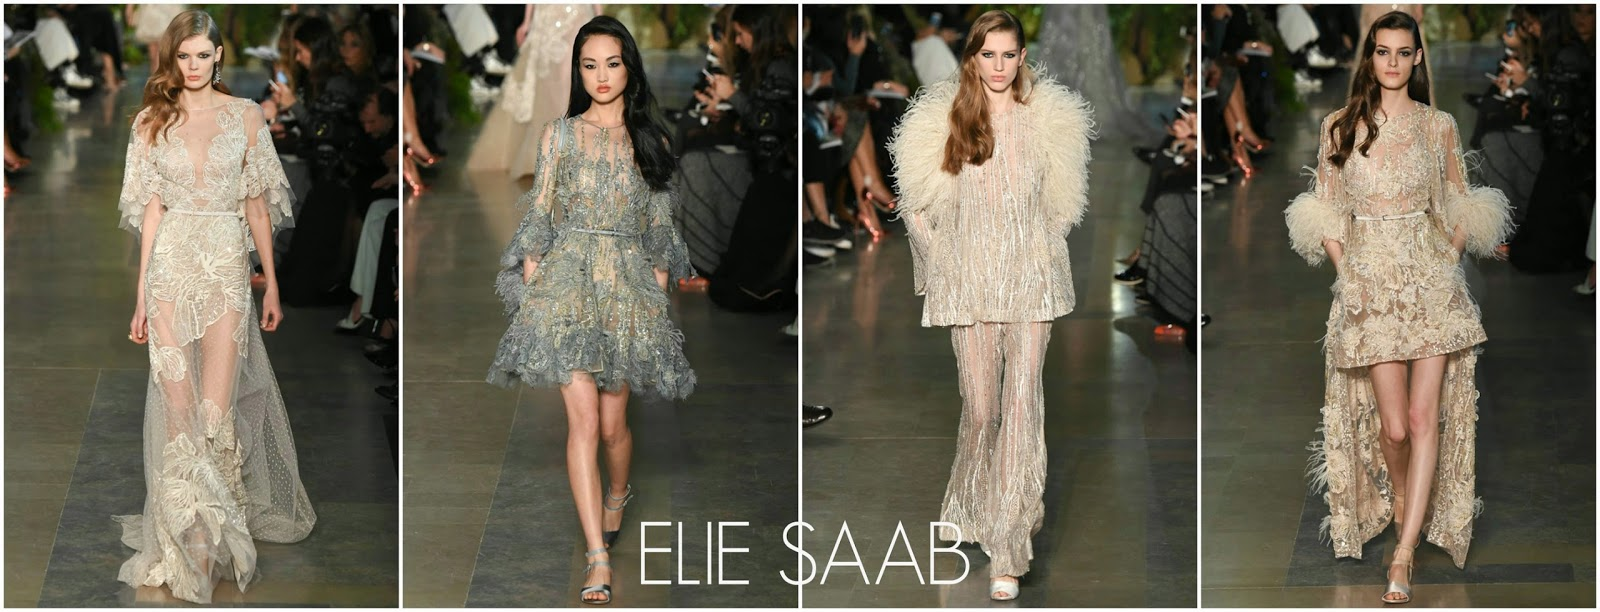 catwalk, runway report, designer, fashion week, Elie Saab SS15 Couture show, Paris, fashion week